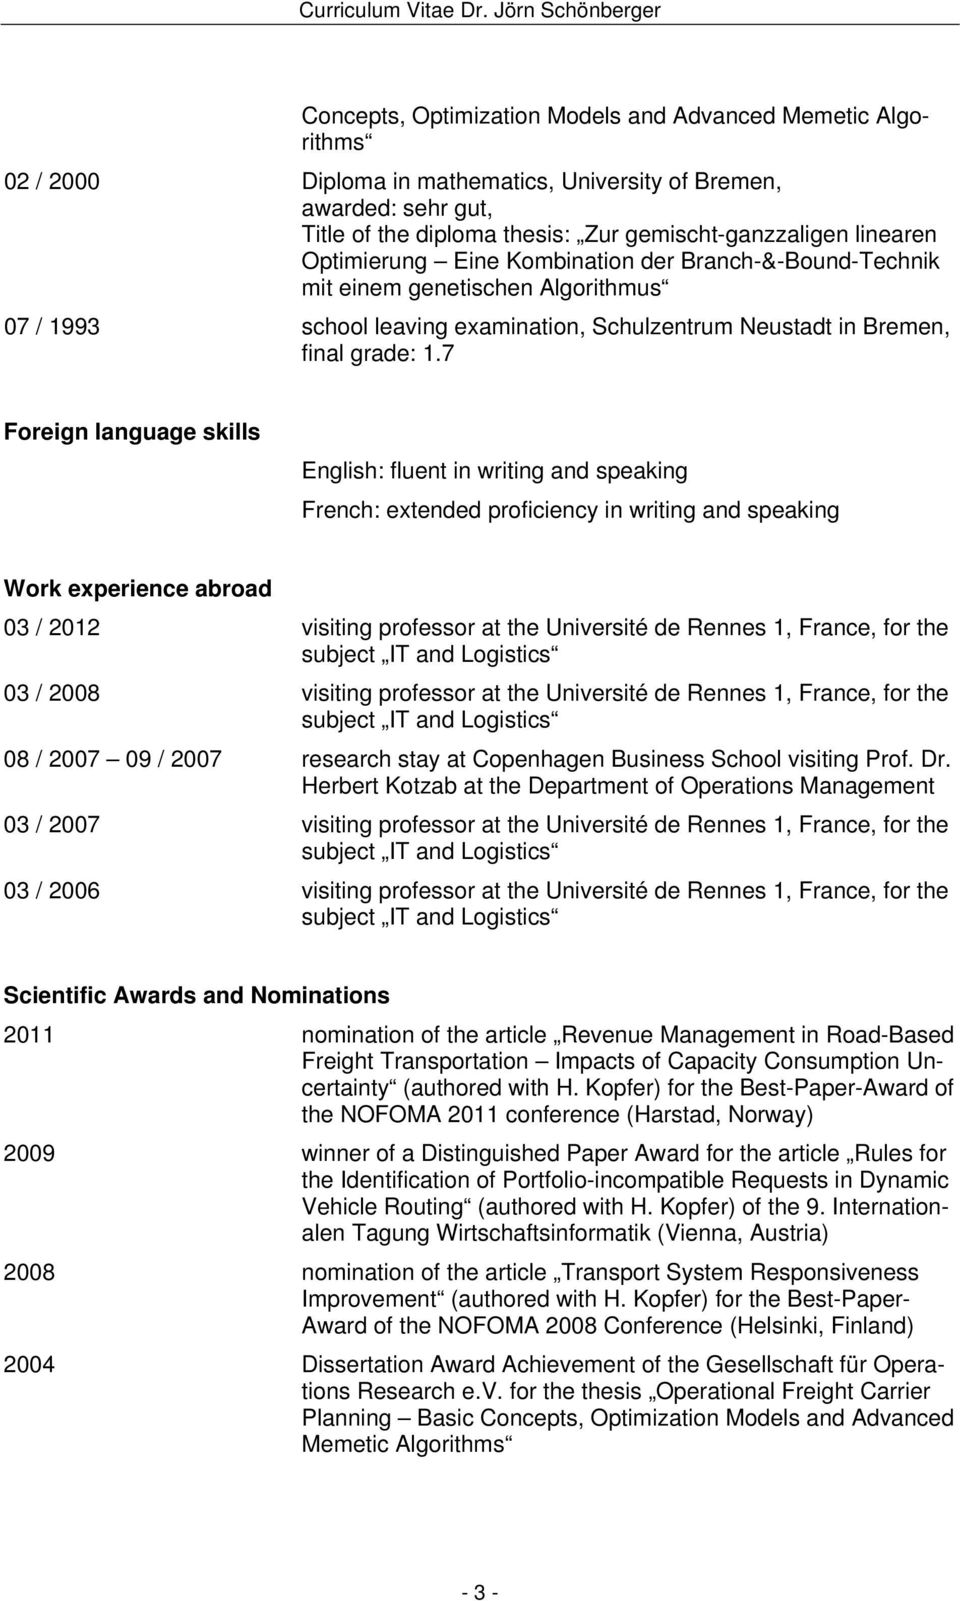 7 Foreign language skills English: fluent in writing and speaking French: extended proficiency in writing and speaking Work experience abroad 03 / 2012 visiting professor at the Université de Rennes